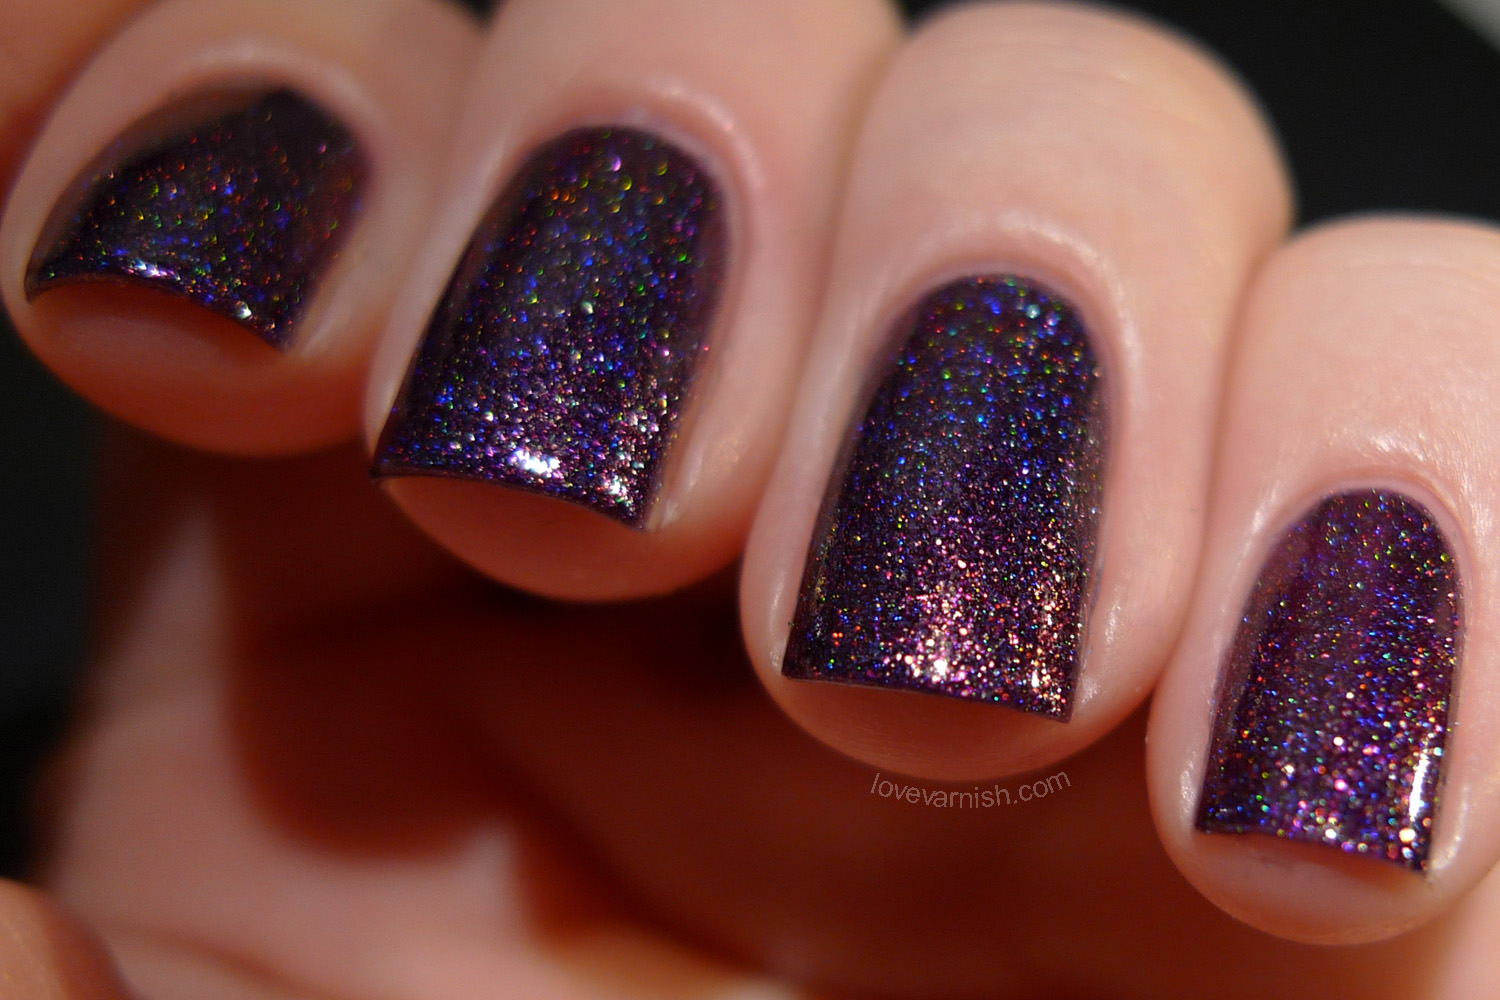 Glam Polish Legendary purple shimmer holographic